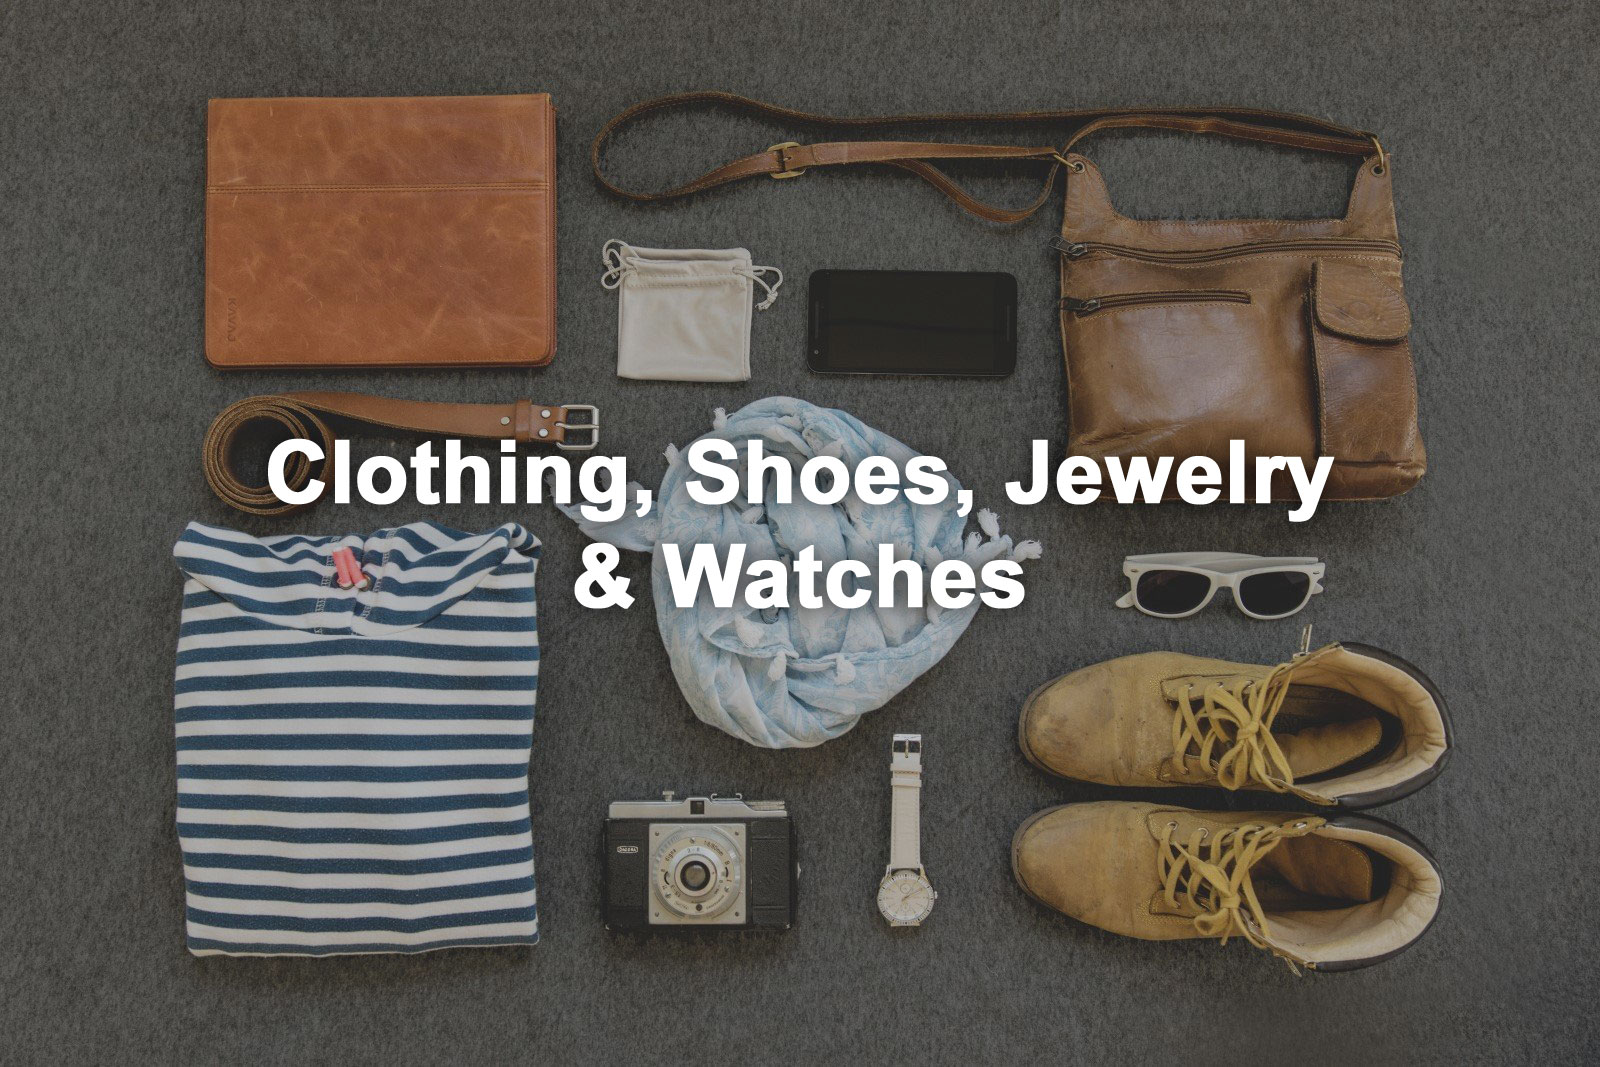 Clothing, Shoes, Jewelry & Watches